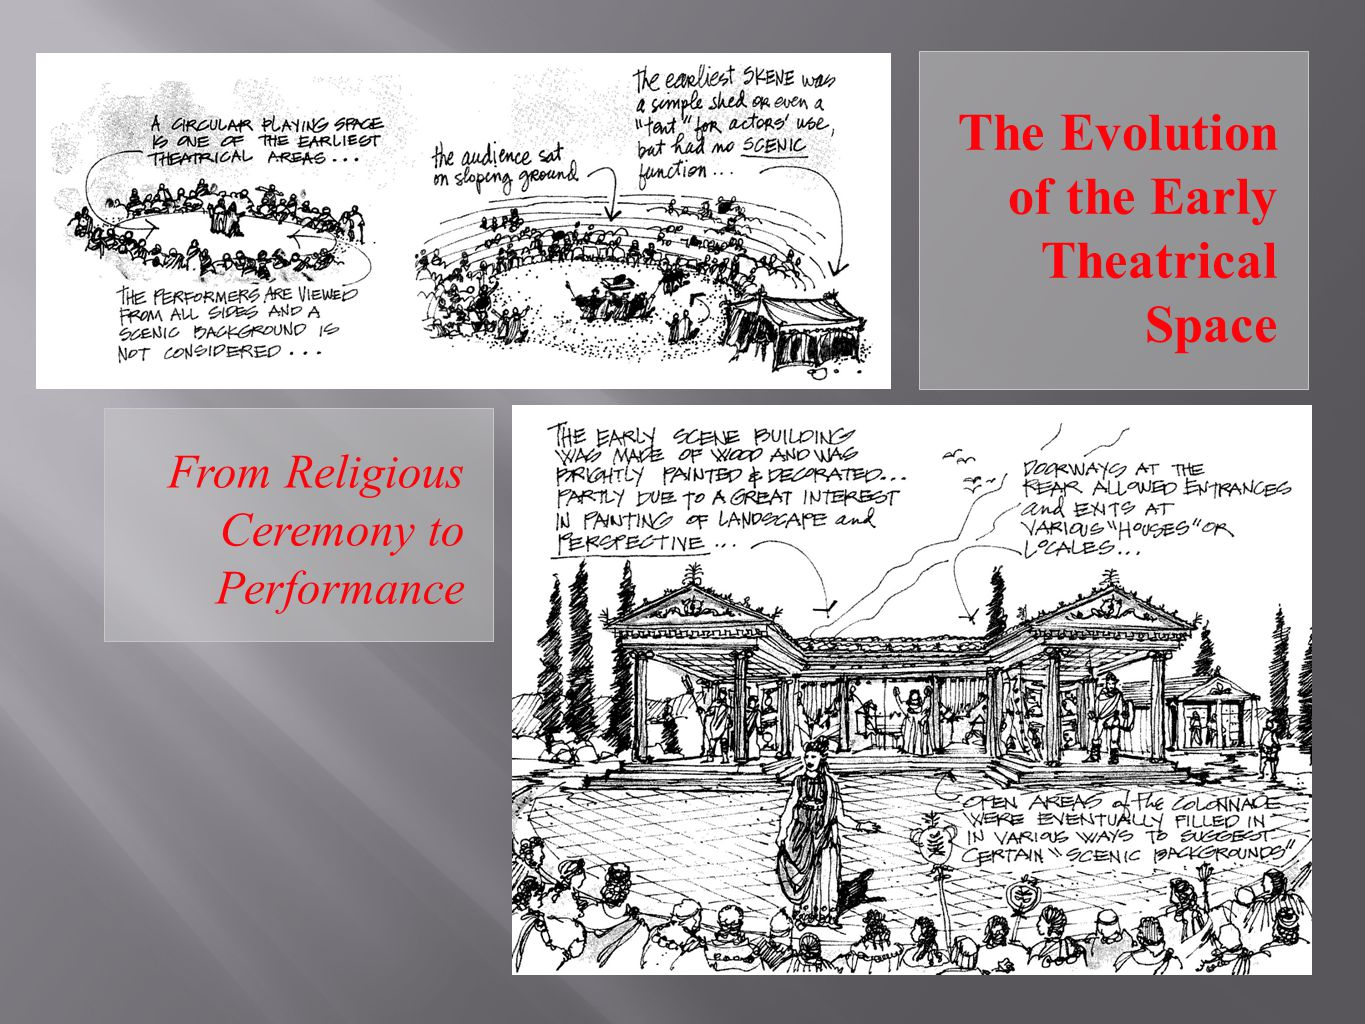 The Evolution of the Early Theatrical Space From Religious Ceremony to Performance